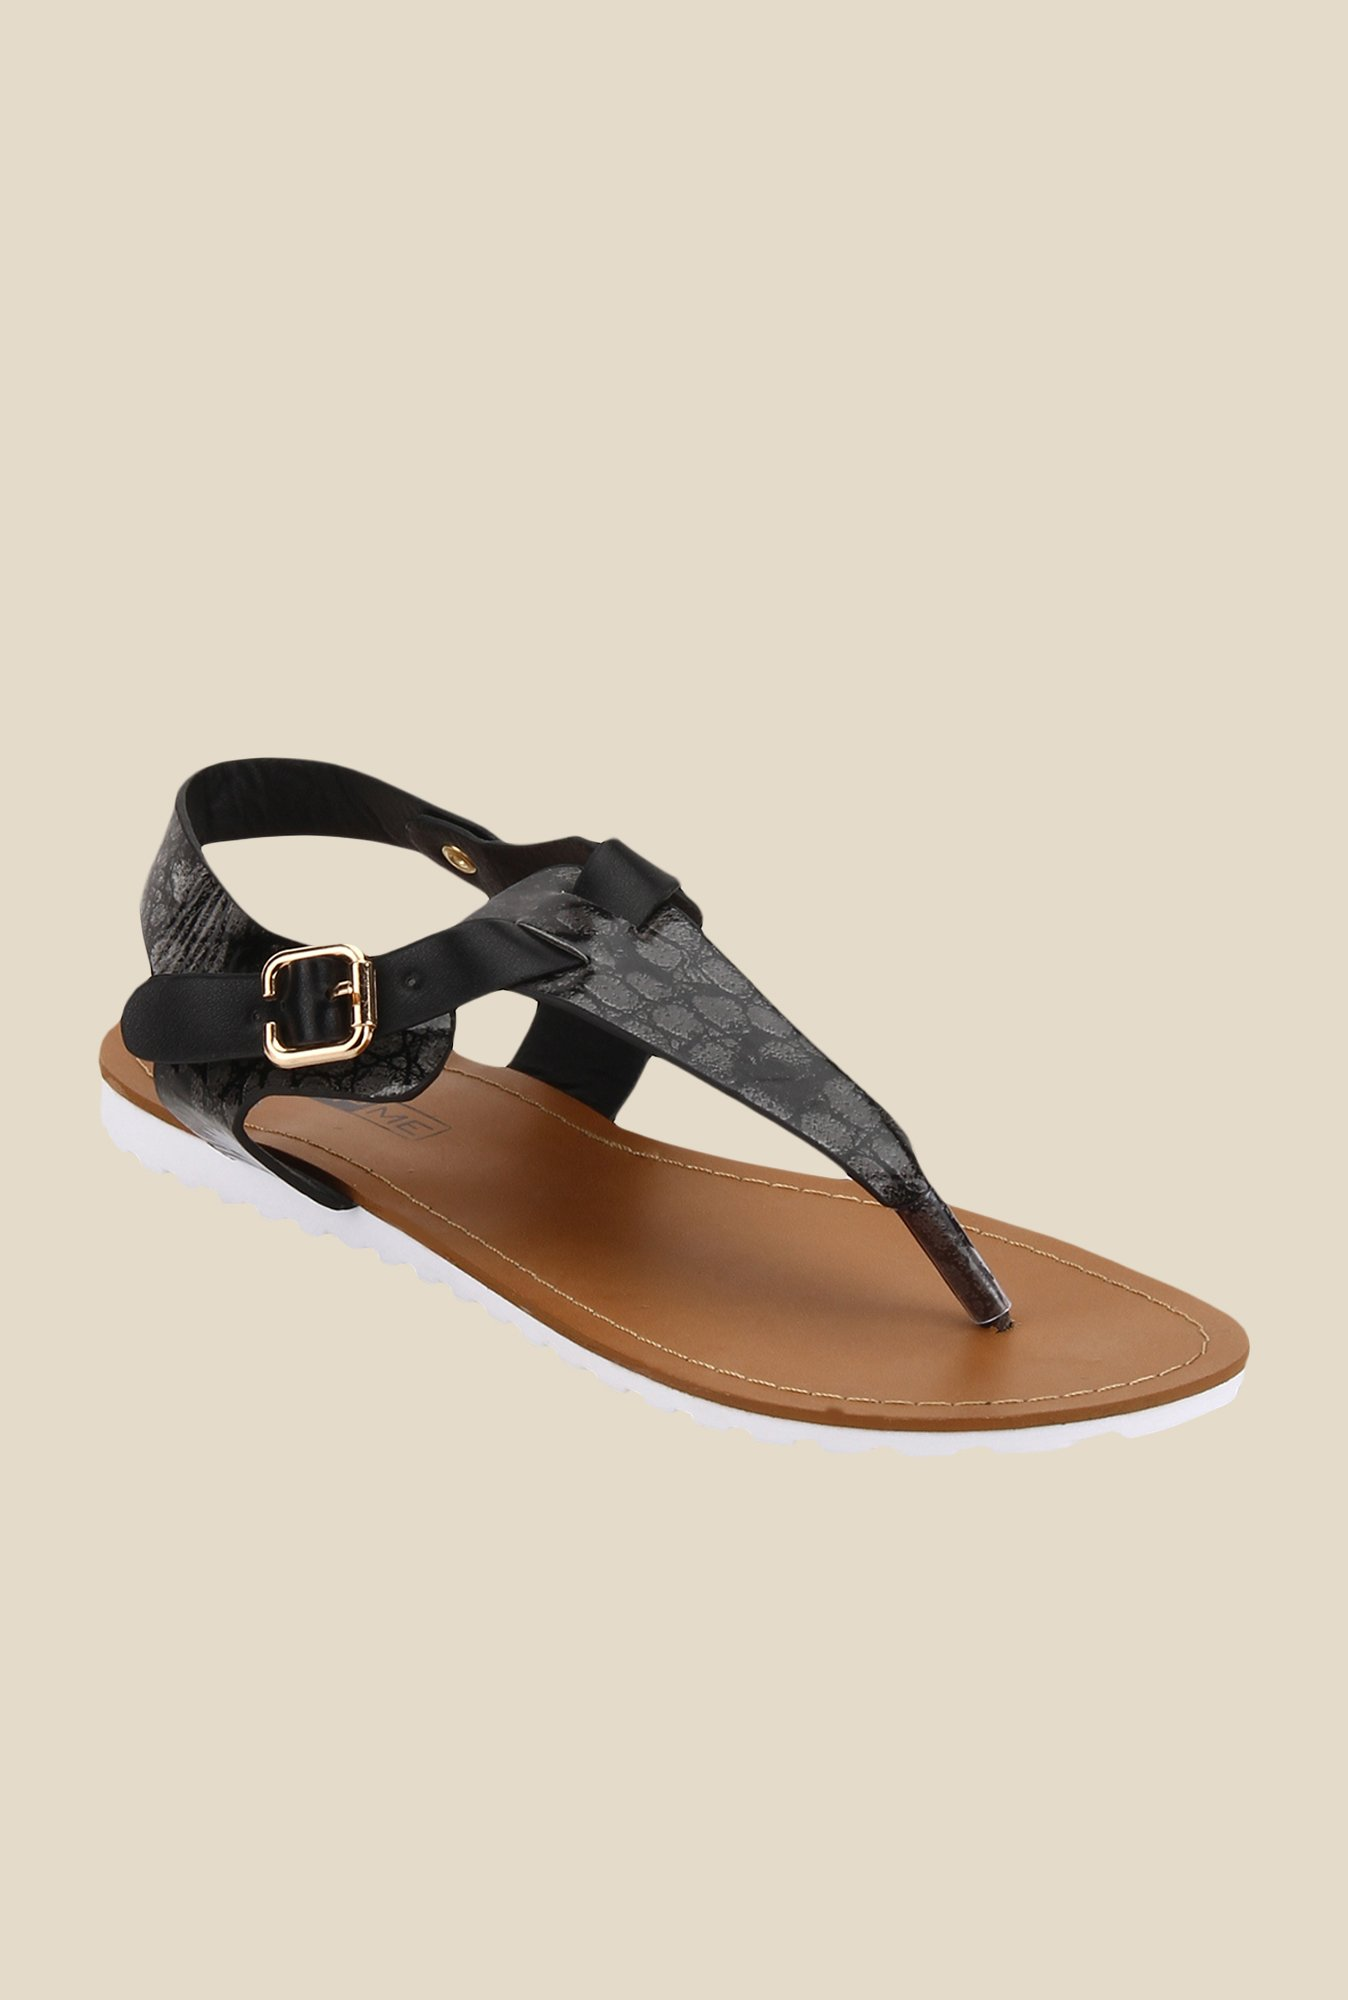 Yepme Black T-Strap Sandals